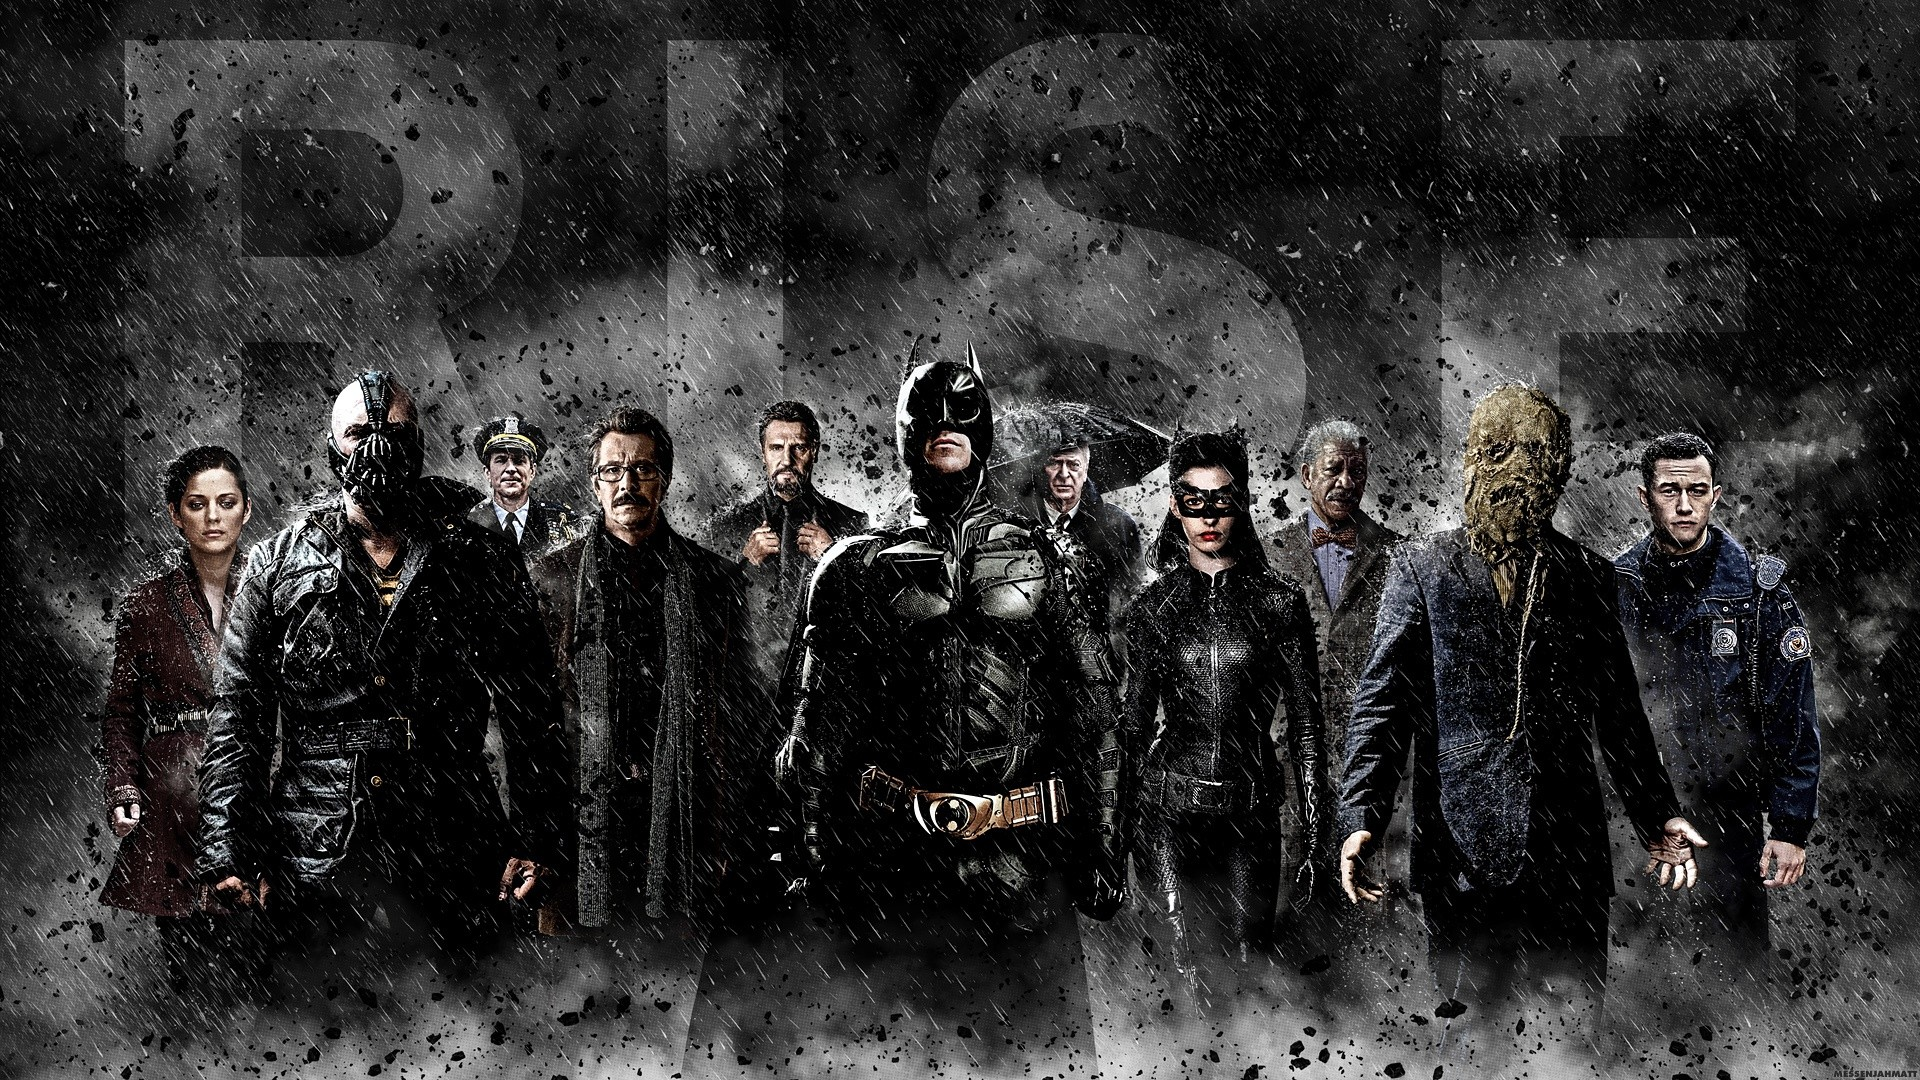 dark-Police-Rain-Catsuits-Glasses-Batman-Bane-Scarecrow-character-Jim-Gordon-People-The-wallpaper-wpc5803949